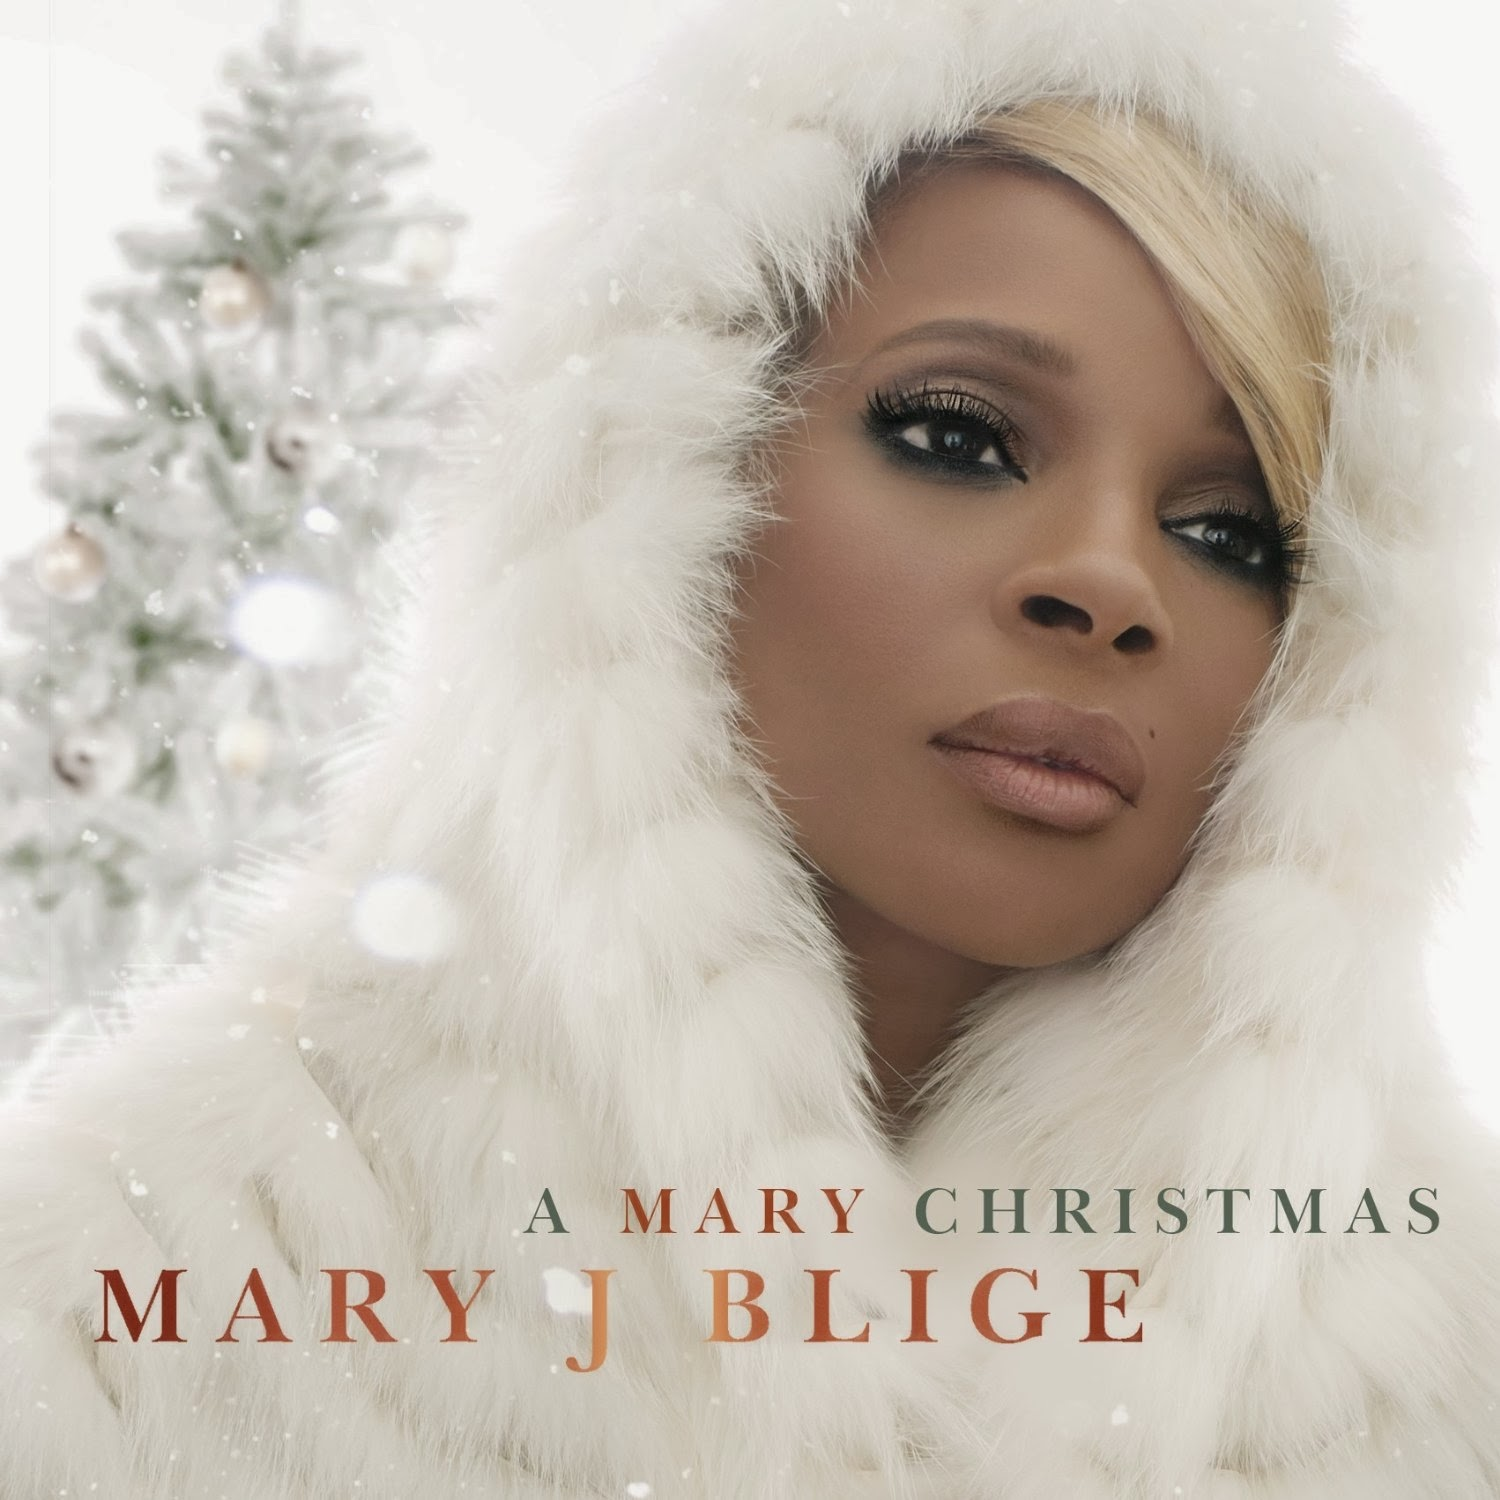 mary j blige tamar braxton release holiday albums top 10 best selling christmas albums - Best Selling Christmas Albums